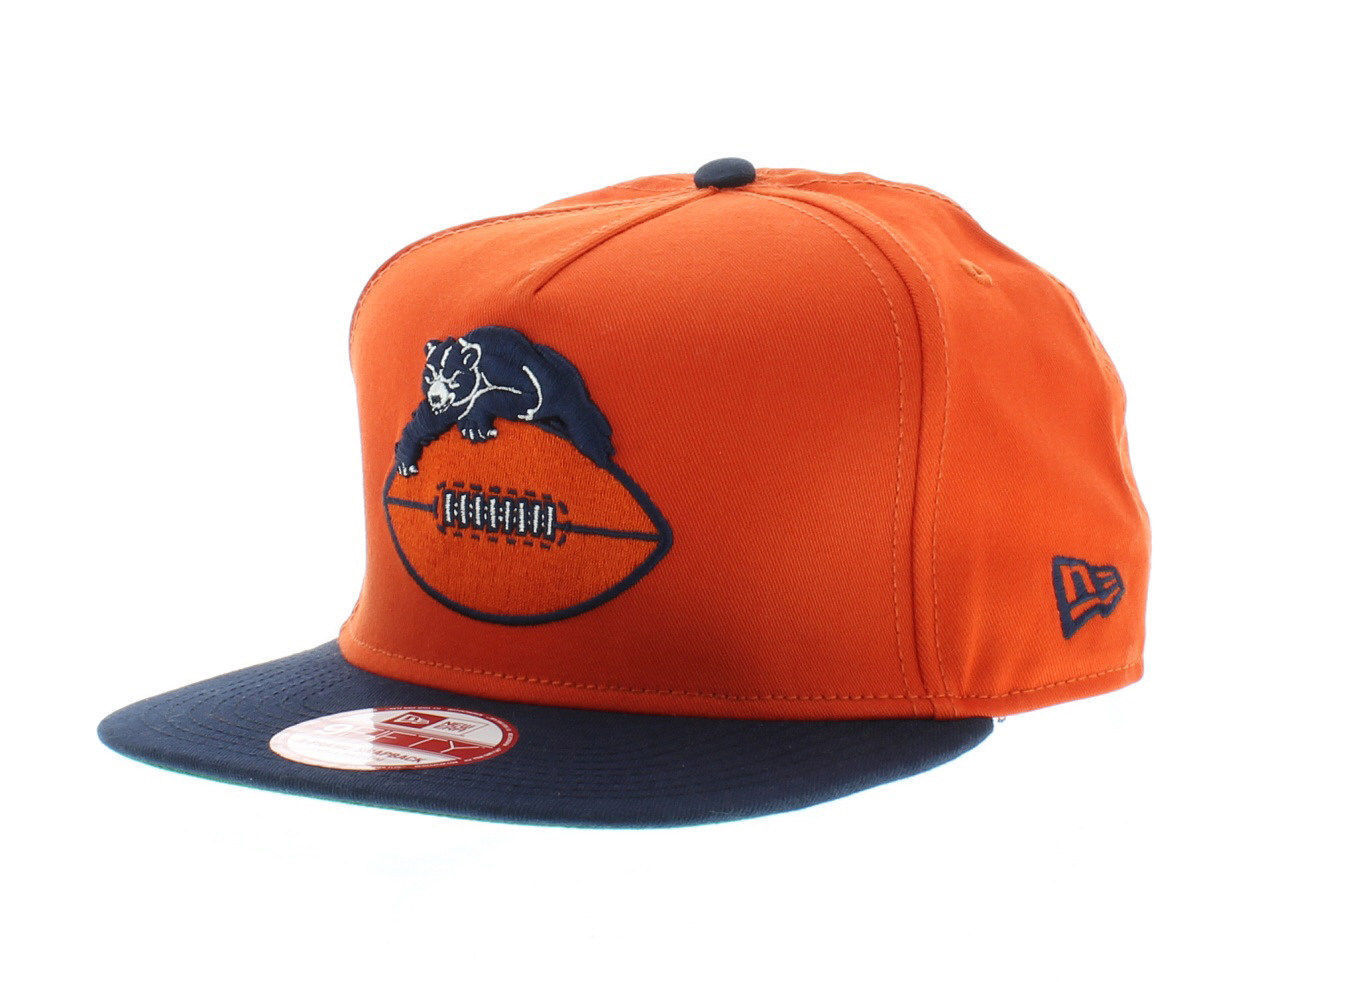 Primary image for New Era 9Fifty NFL CHICAGO BEARS hat cap Snapback Size M/L